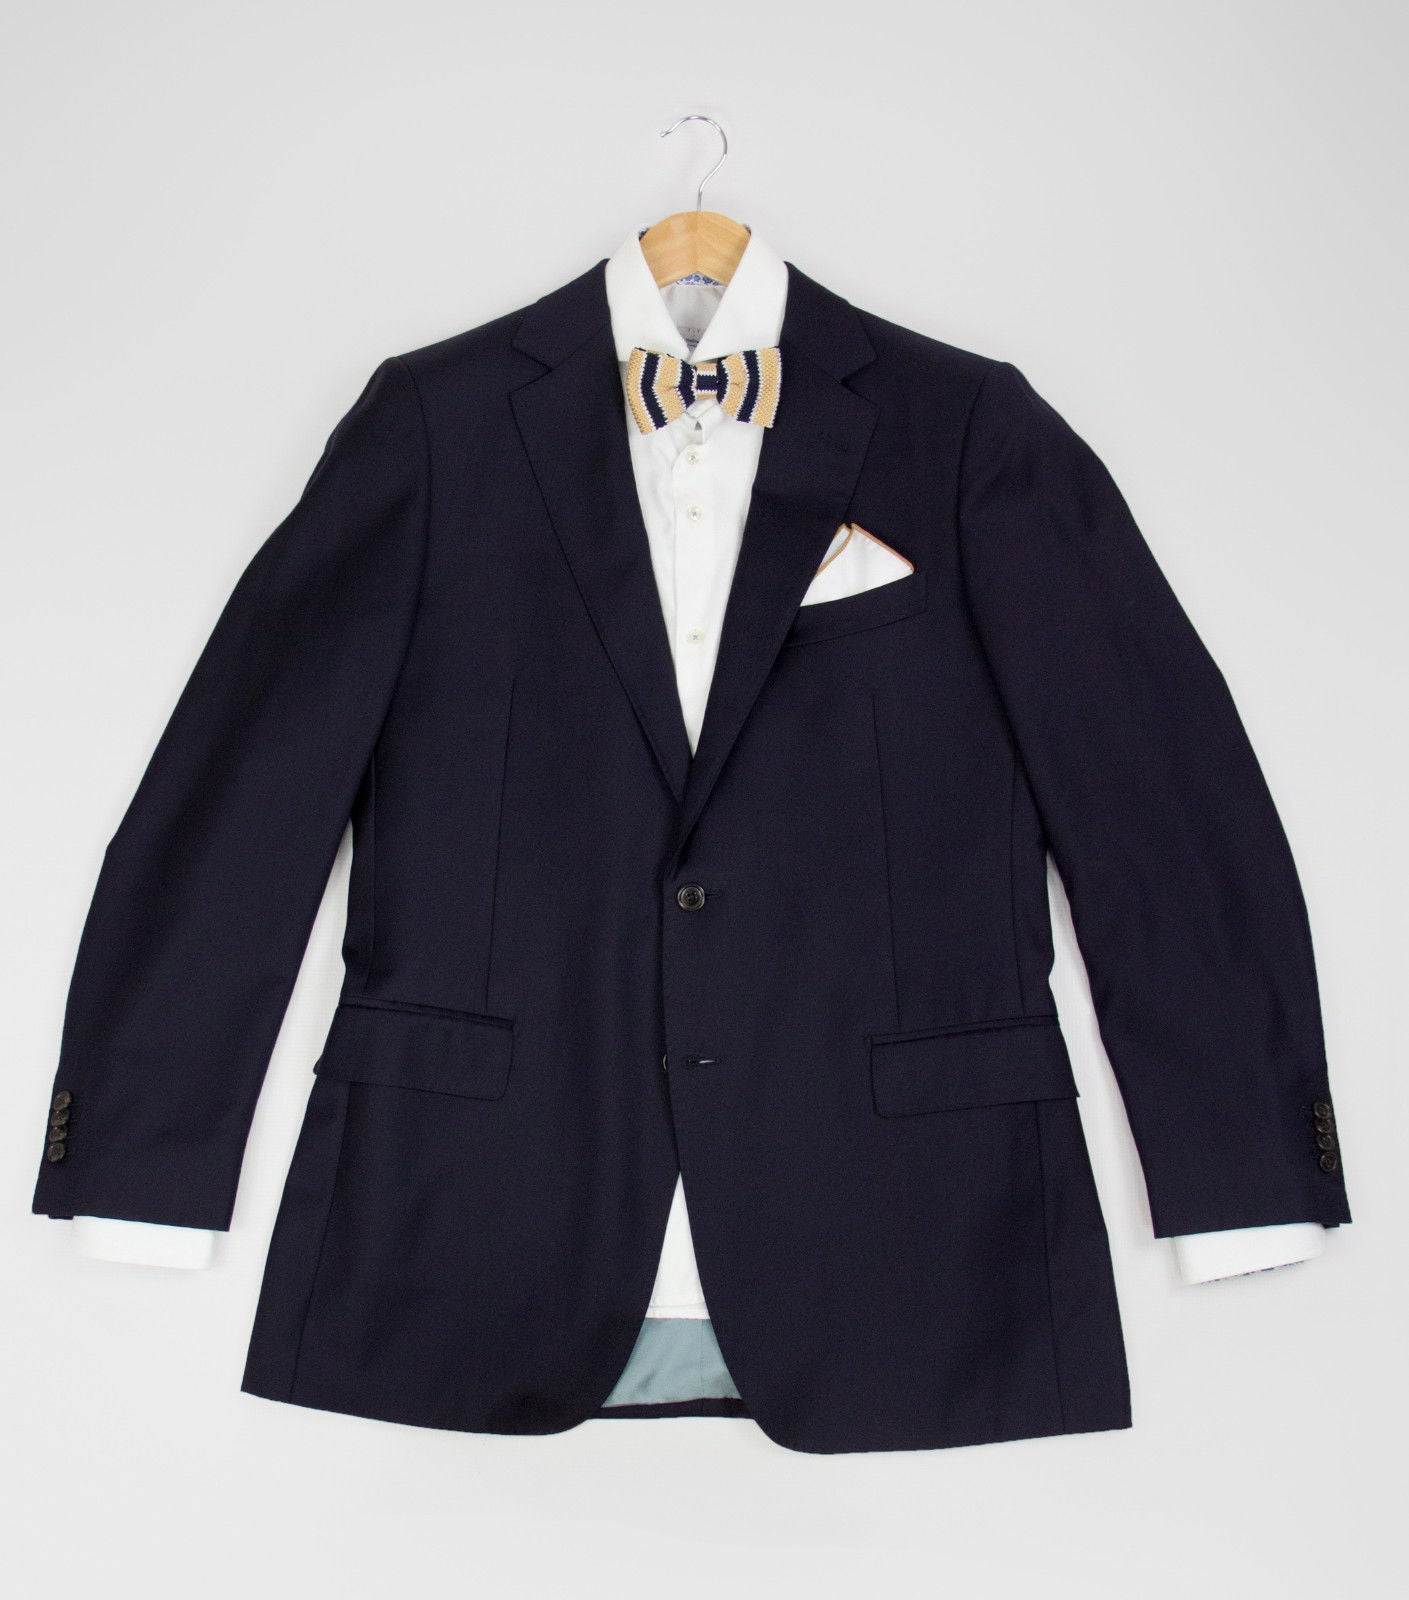 SUITSUPPLY Navy Blue Pure Wool Super 110's Blazer Jacket, USA 42 L - secondfirst